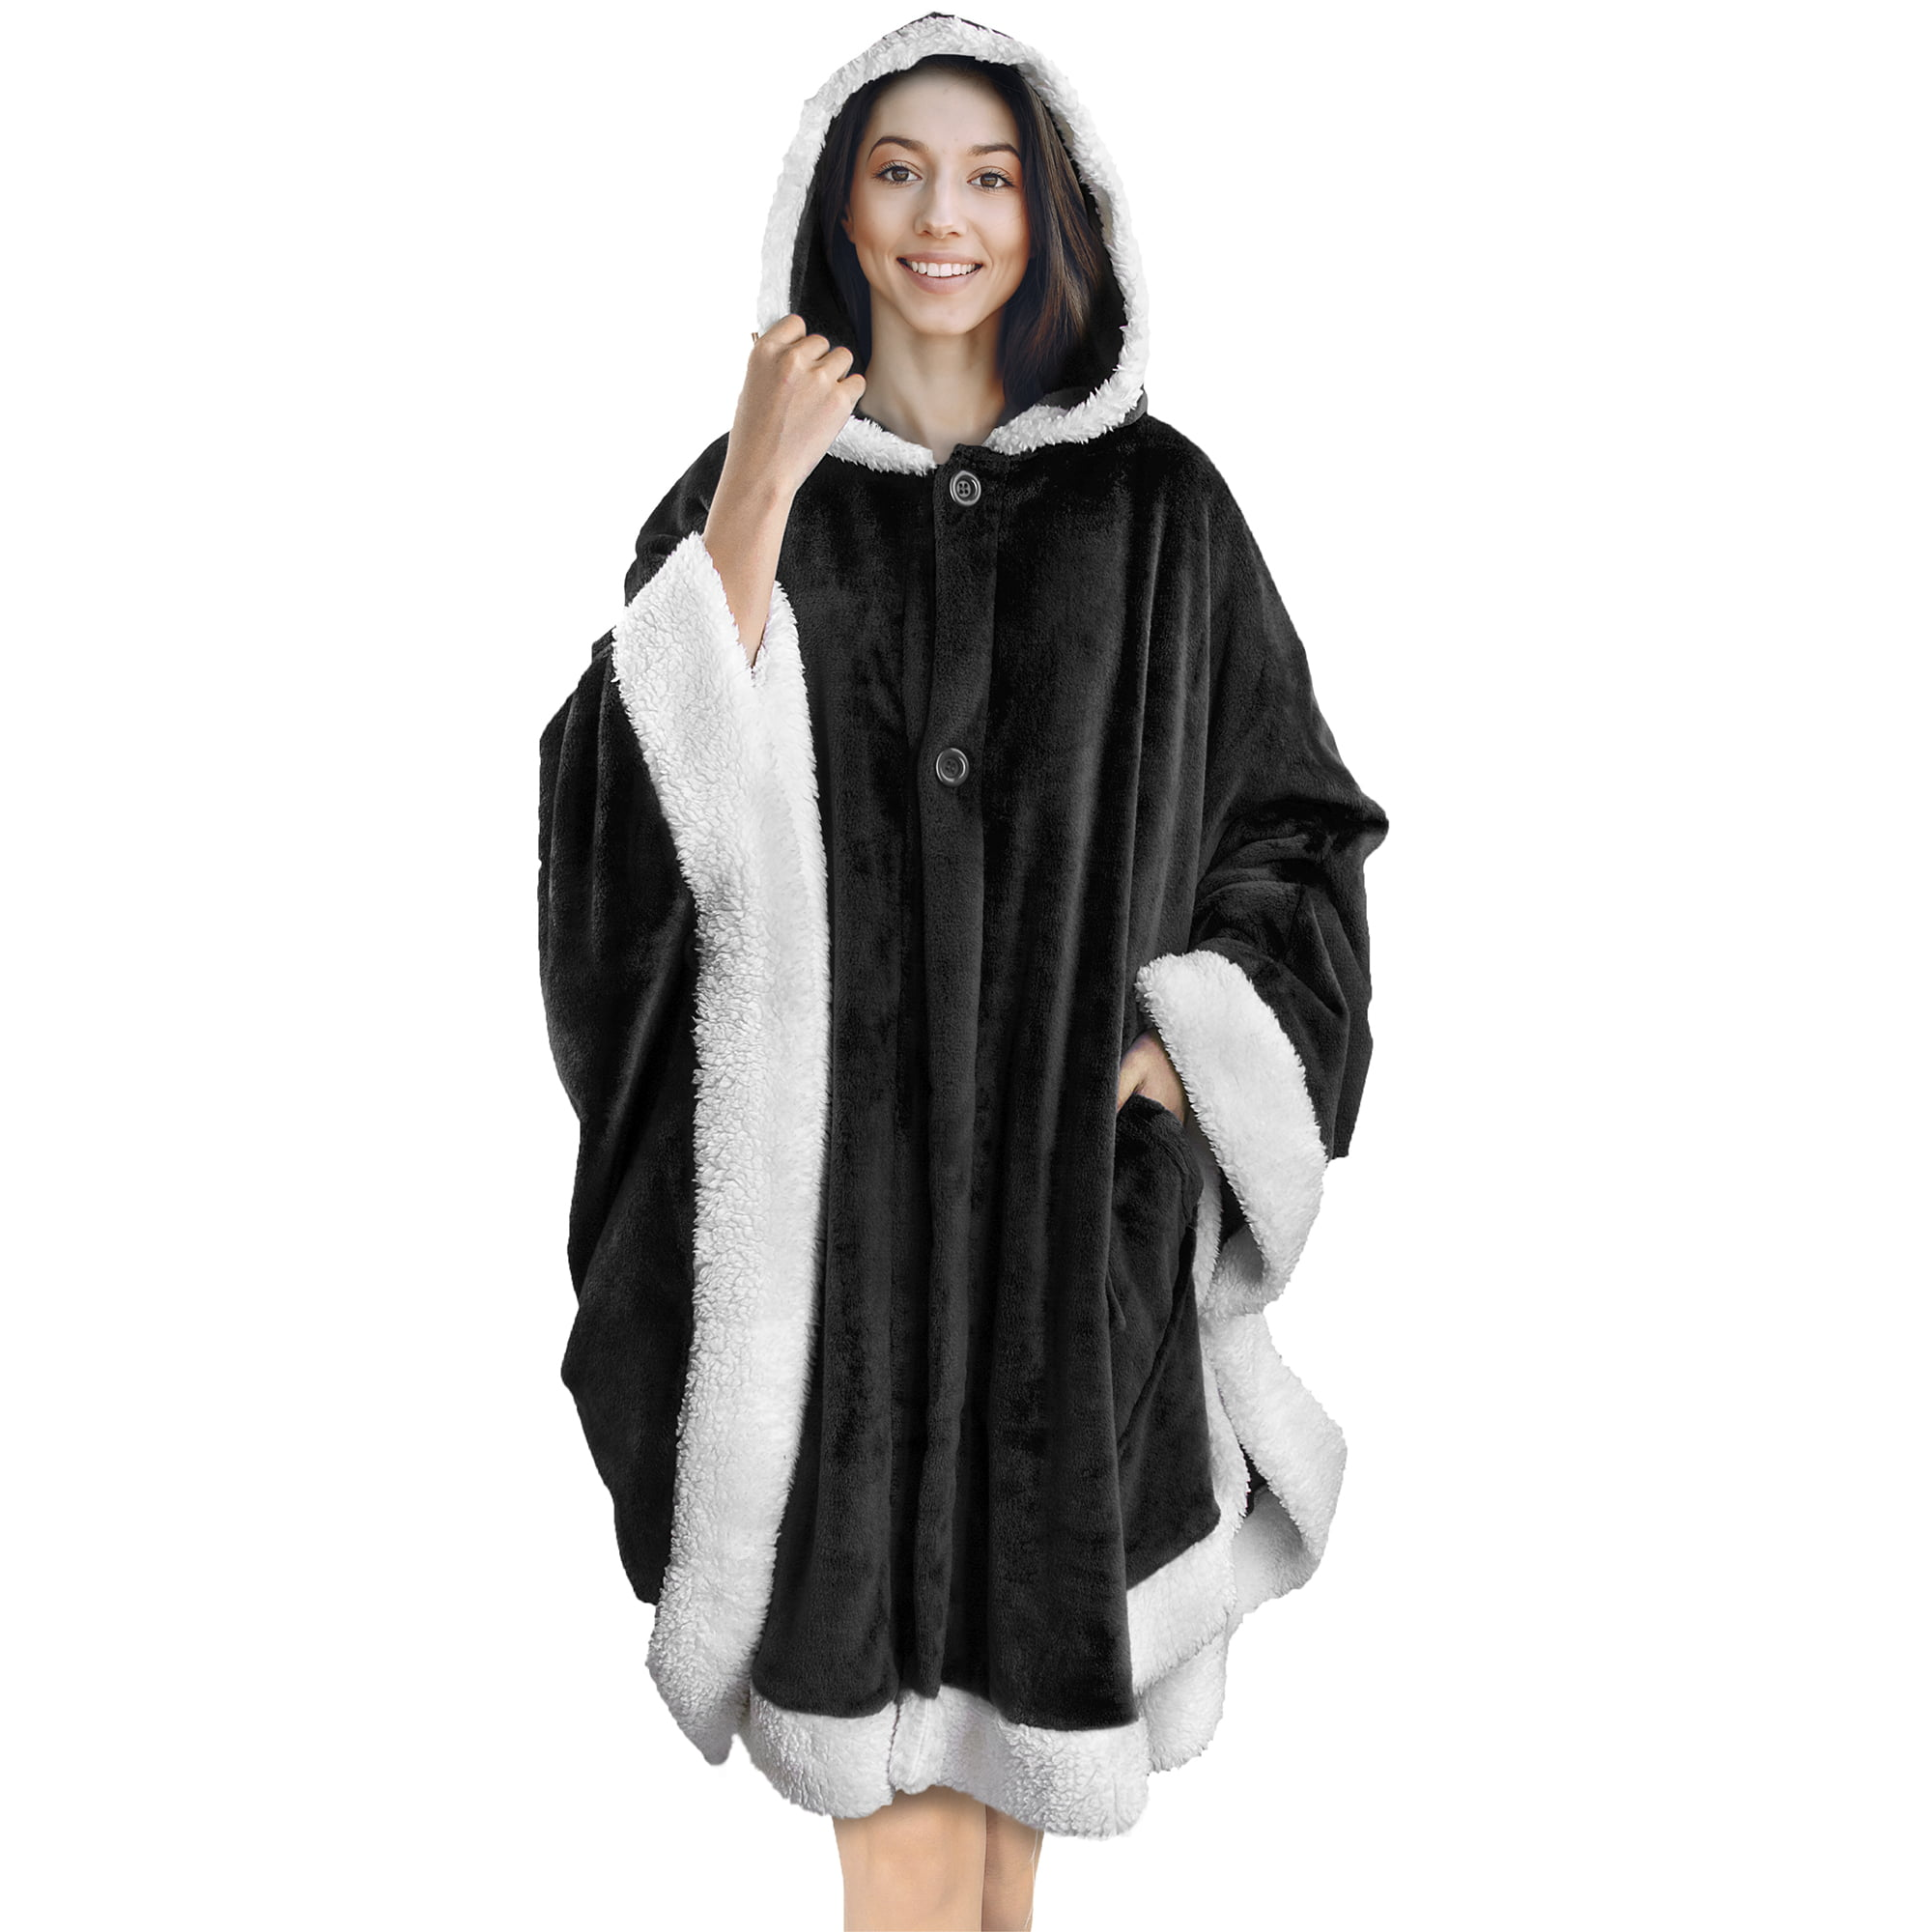 Angel Wrap Hooded with White Sleeve Edges for Women Gift Black Yishide Wearable Poncho Blanket Throw Cape Cozy and Warm with Soft Sherpa